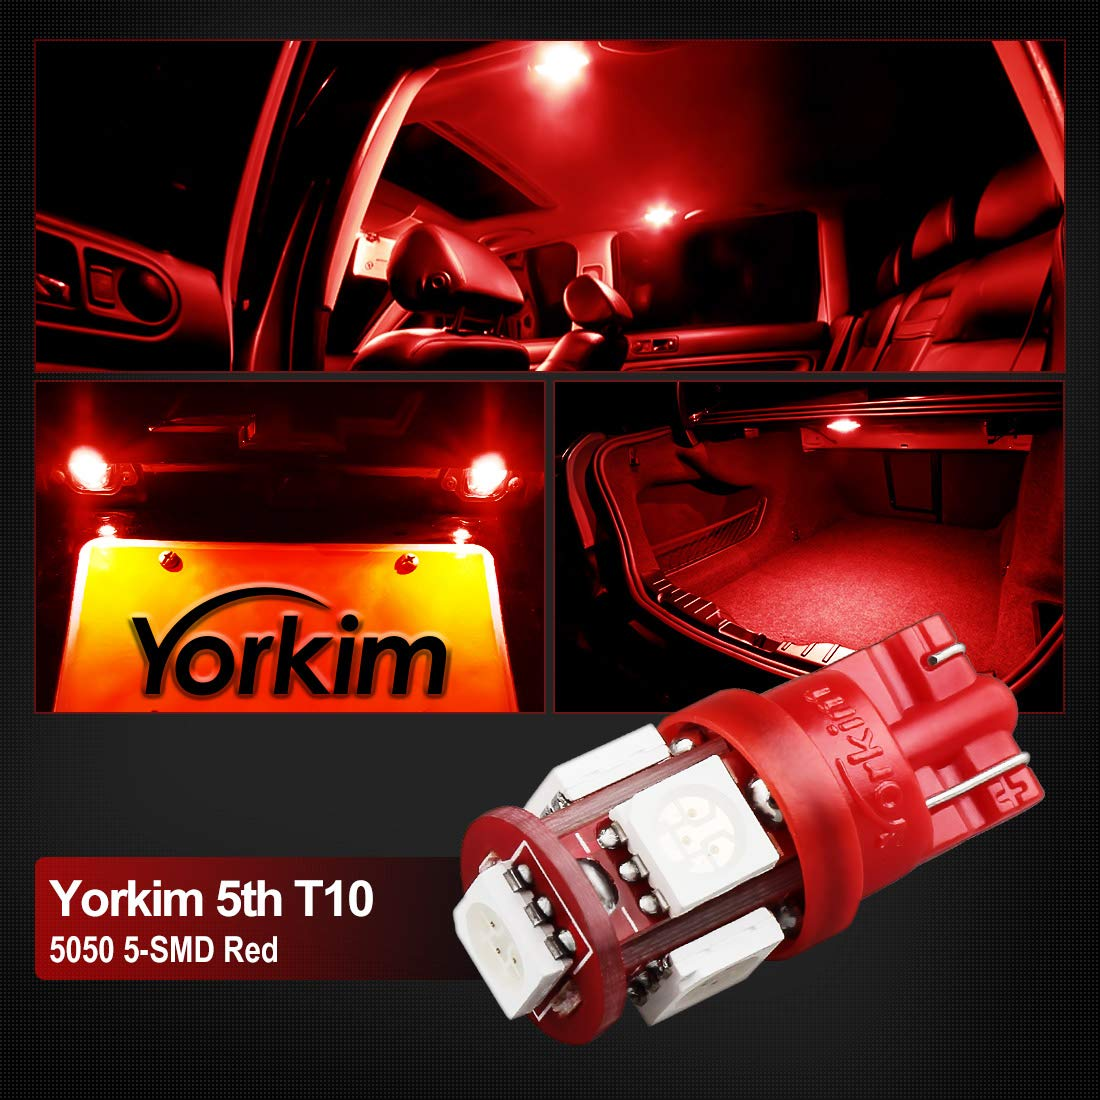 Red 194 LED Interior Lights for Car 168 LED Bulb Yorkim T10 LED Bulb Red 6000k Super Bright Newest 5th Generation Universal Fit Pack of 10 2825 LED Bulb Red Red T10 LED Bulbs W5W LED Bulb